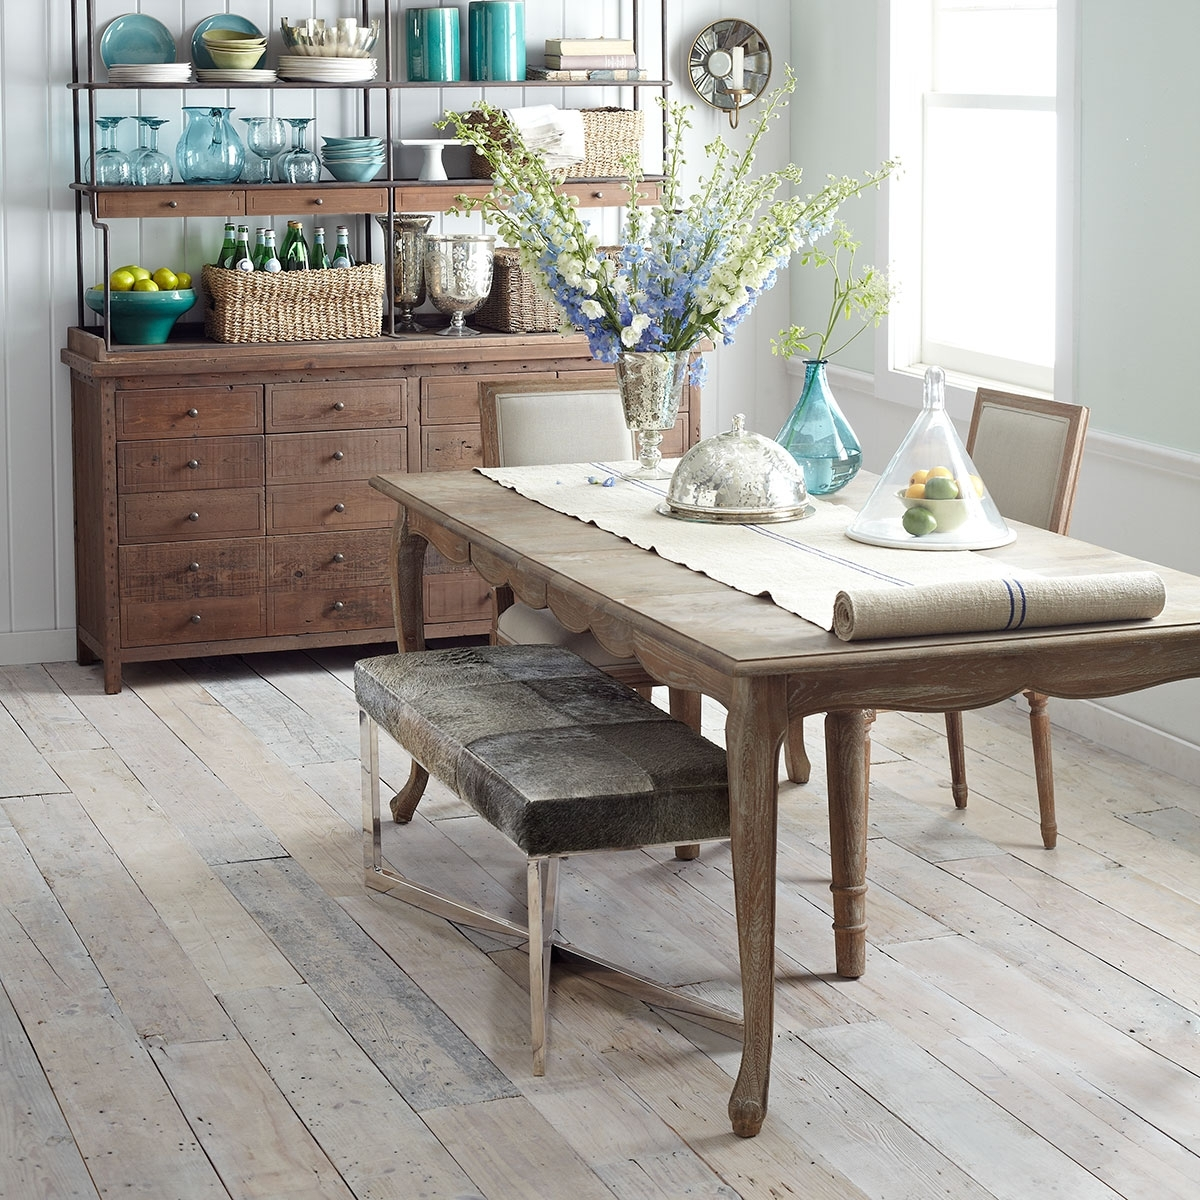 Most Popular Qualities Of French Dining Tables – Home Decor Ideas Regarding French Country Dining Tables (View 18 of 25)